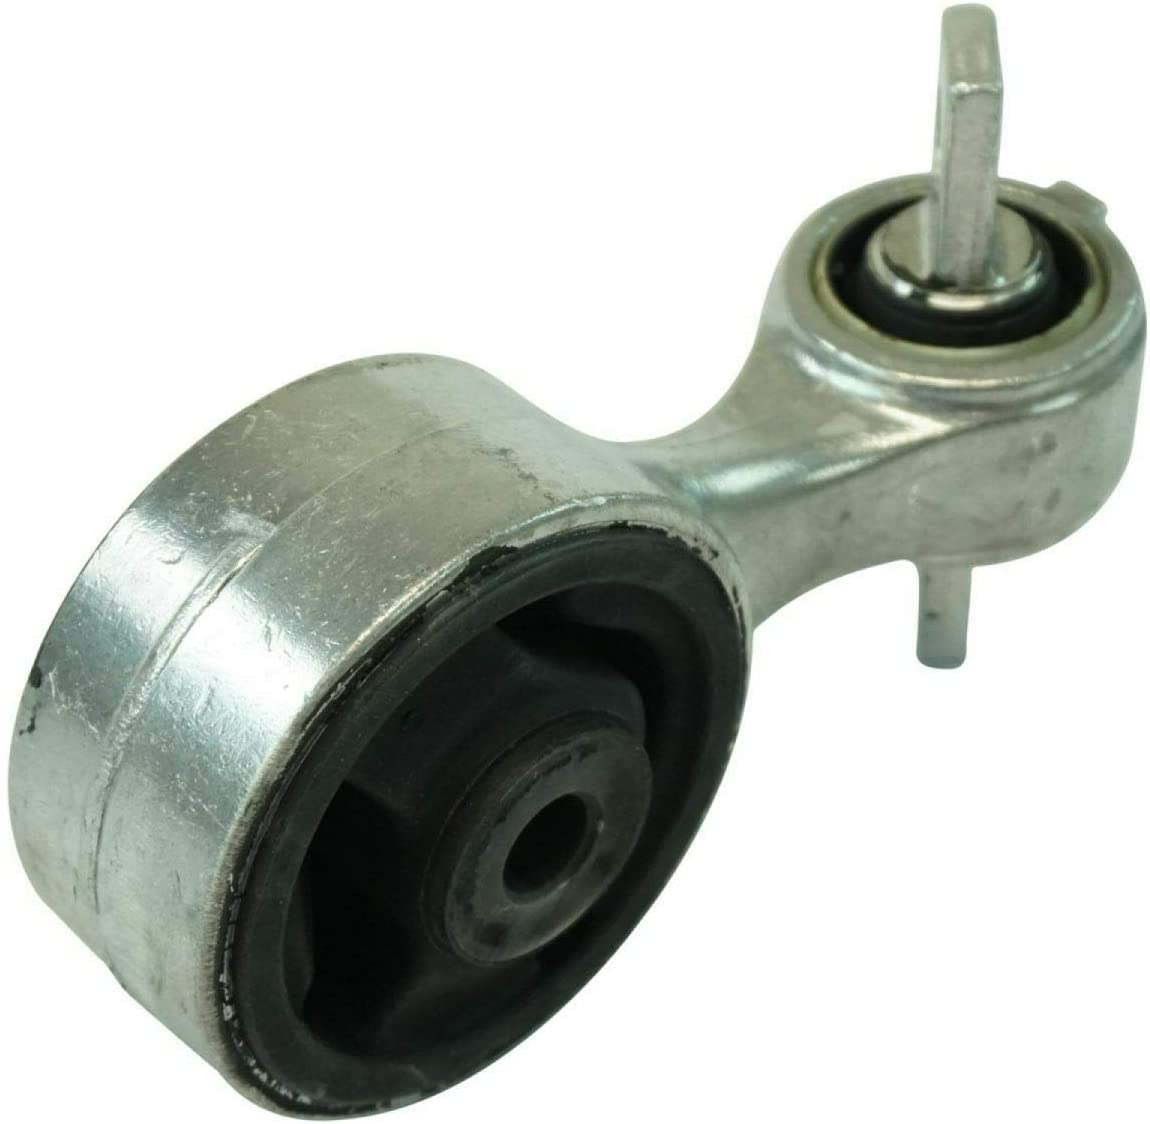 Directly Ranking TOP16 managed store Front Lower Engine Motor Torque Hond Mount with Compatible Strut